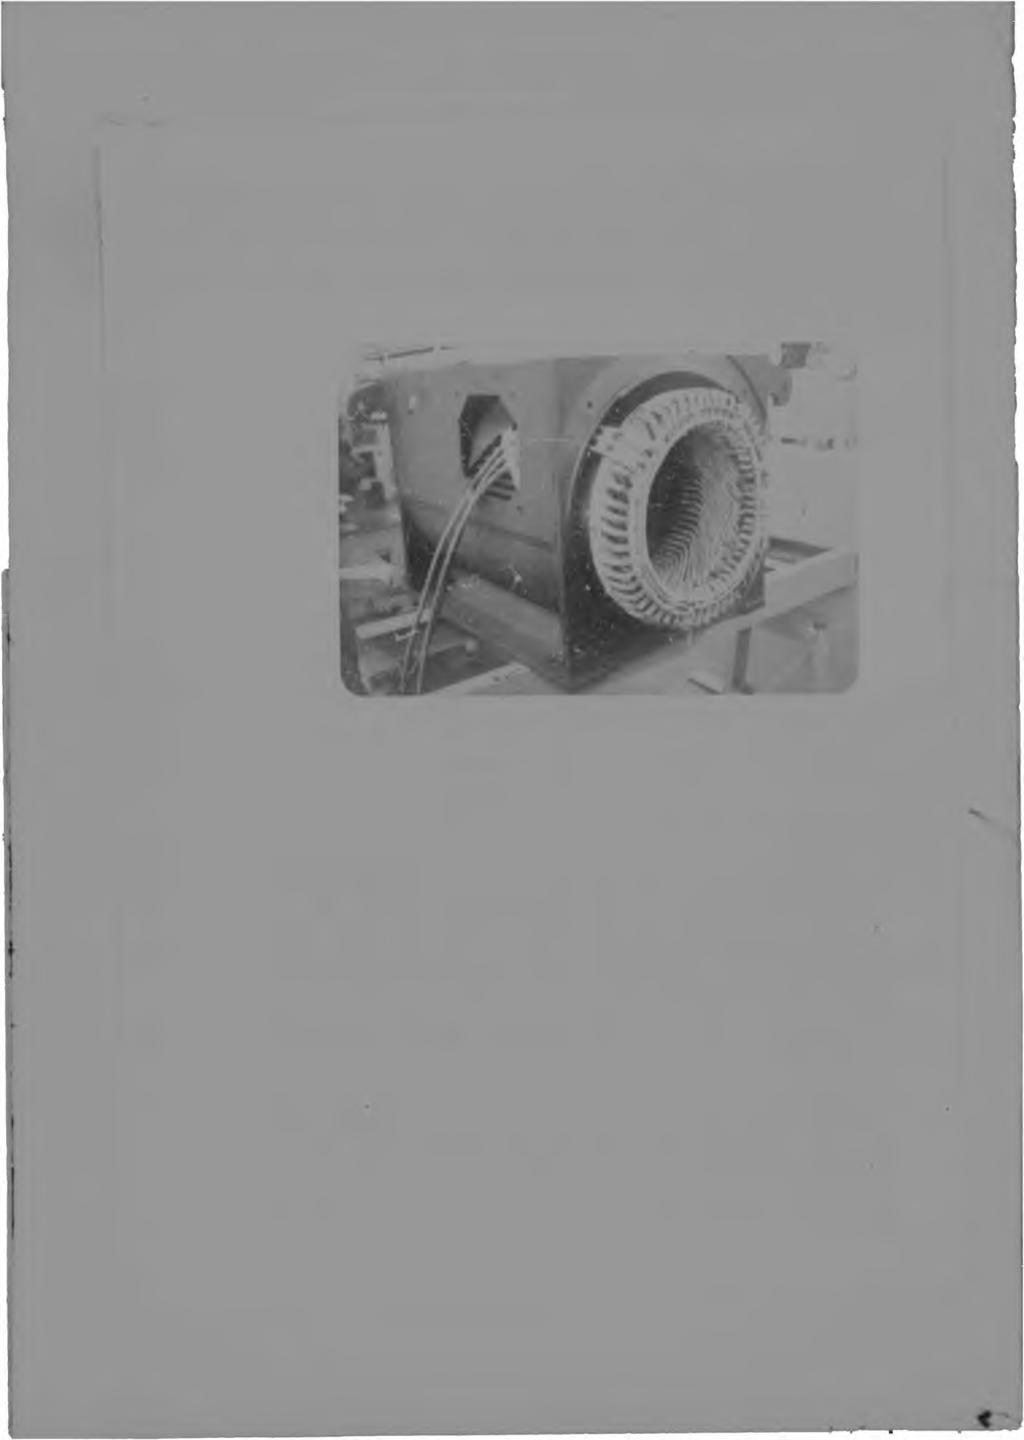 PAGE E-2 Figure E.2 - Photograph of industrial motor A showing the diamond type coils forming the primary winding. Stator winding: The stator winding (Figure E.